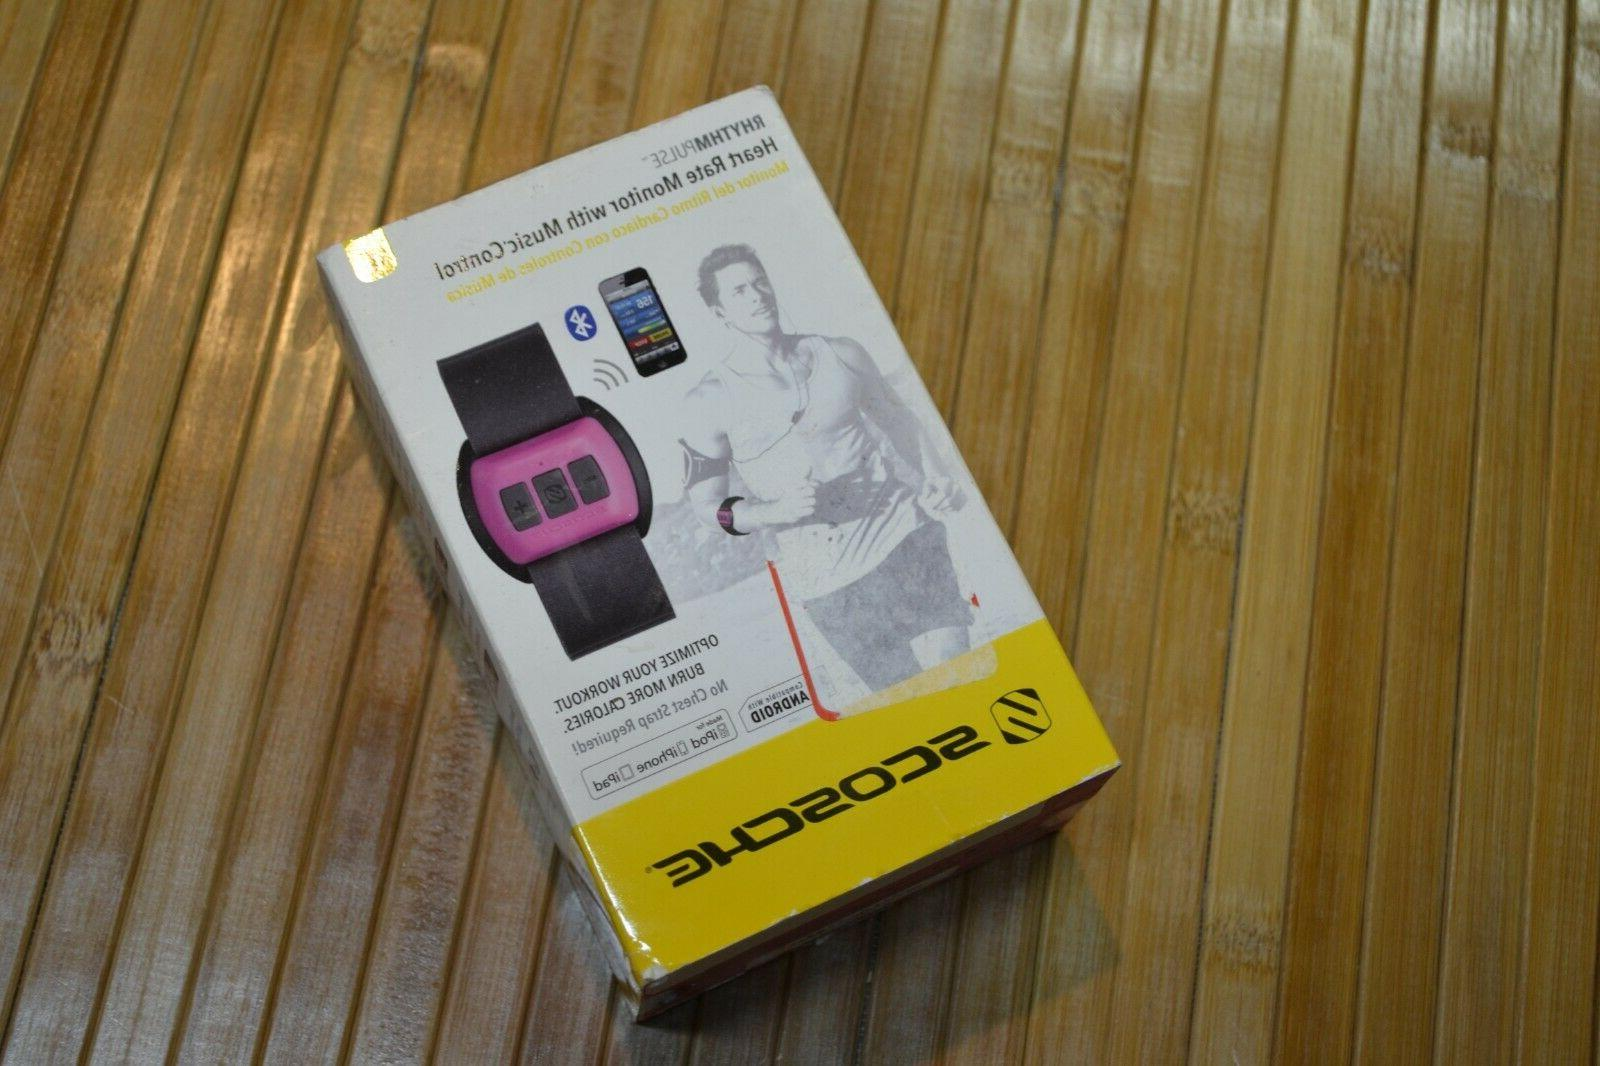 rhythm pulse armband heartrate monitor with music